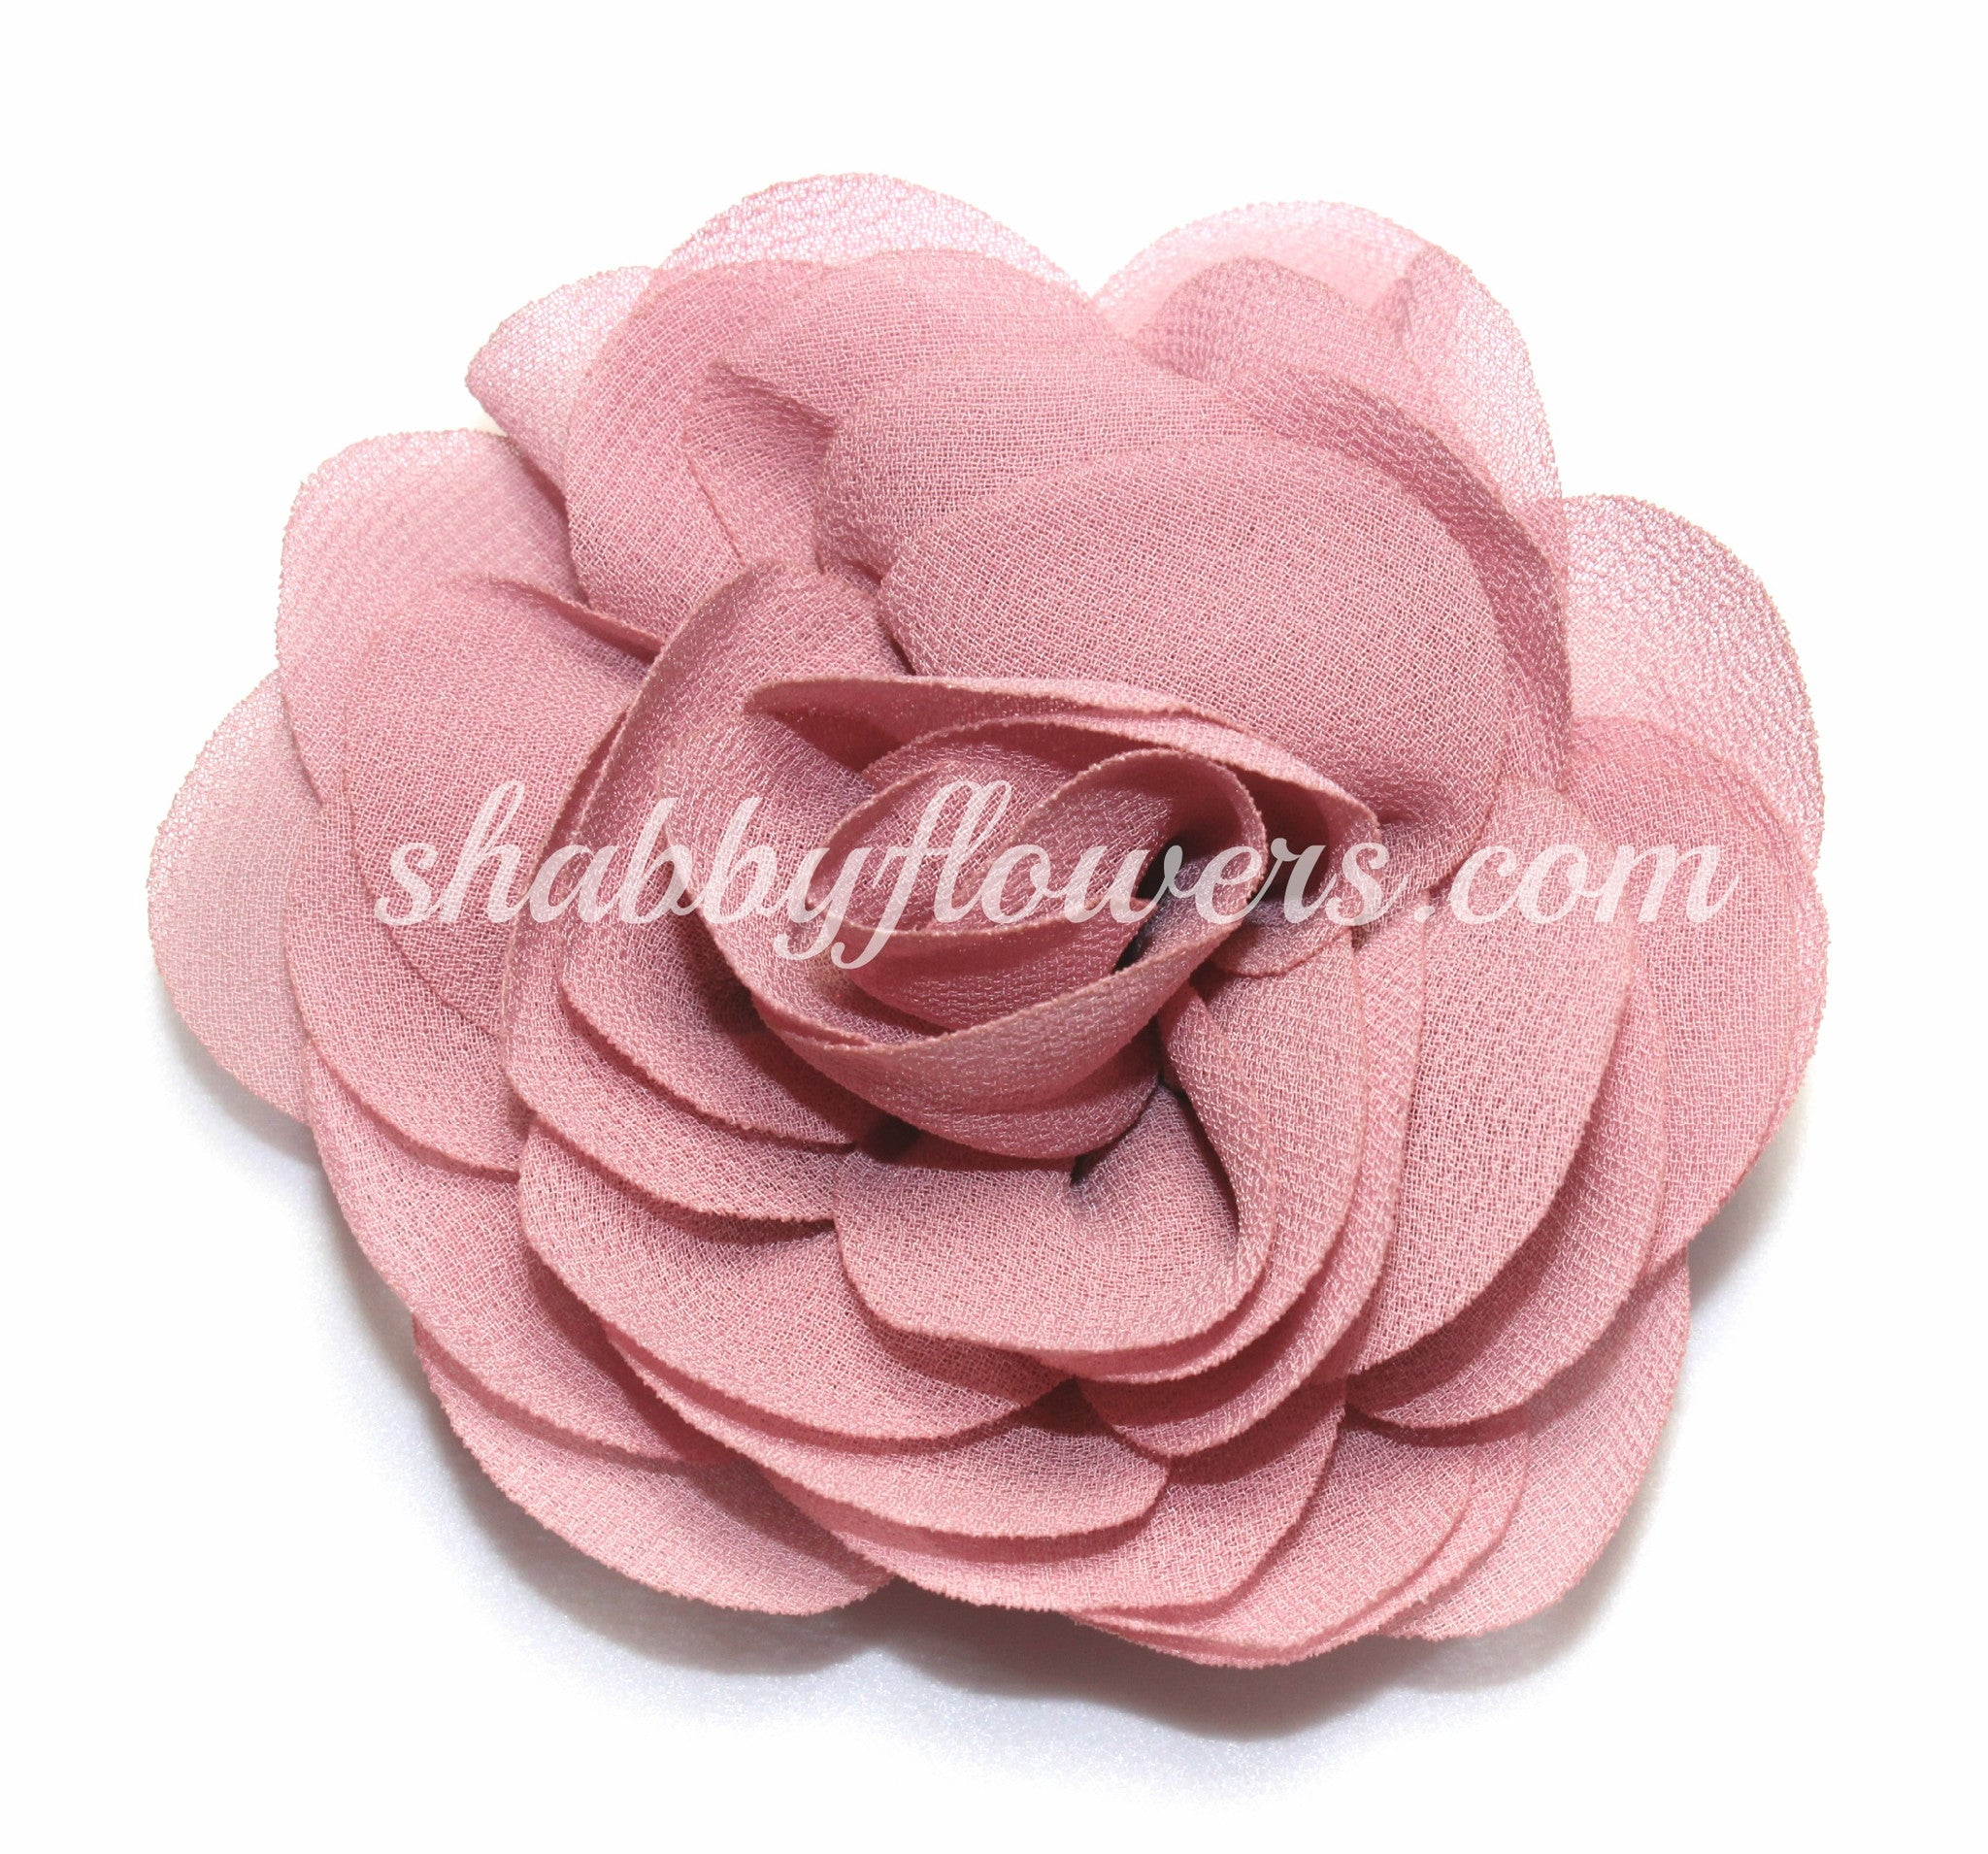 Rose - Vintage Pink - shabbyflowers.com